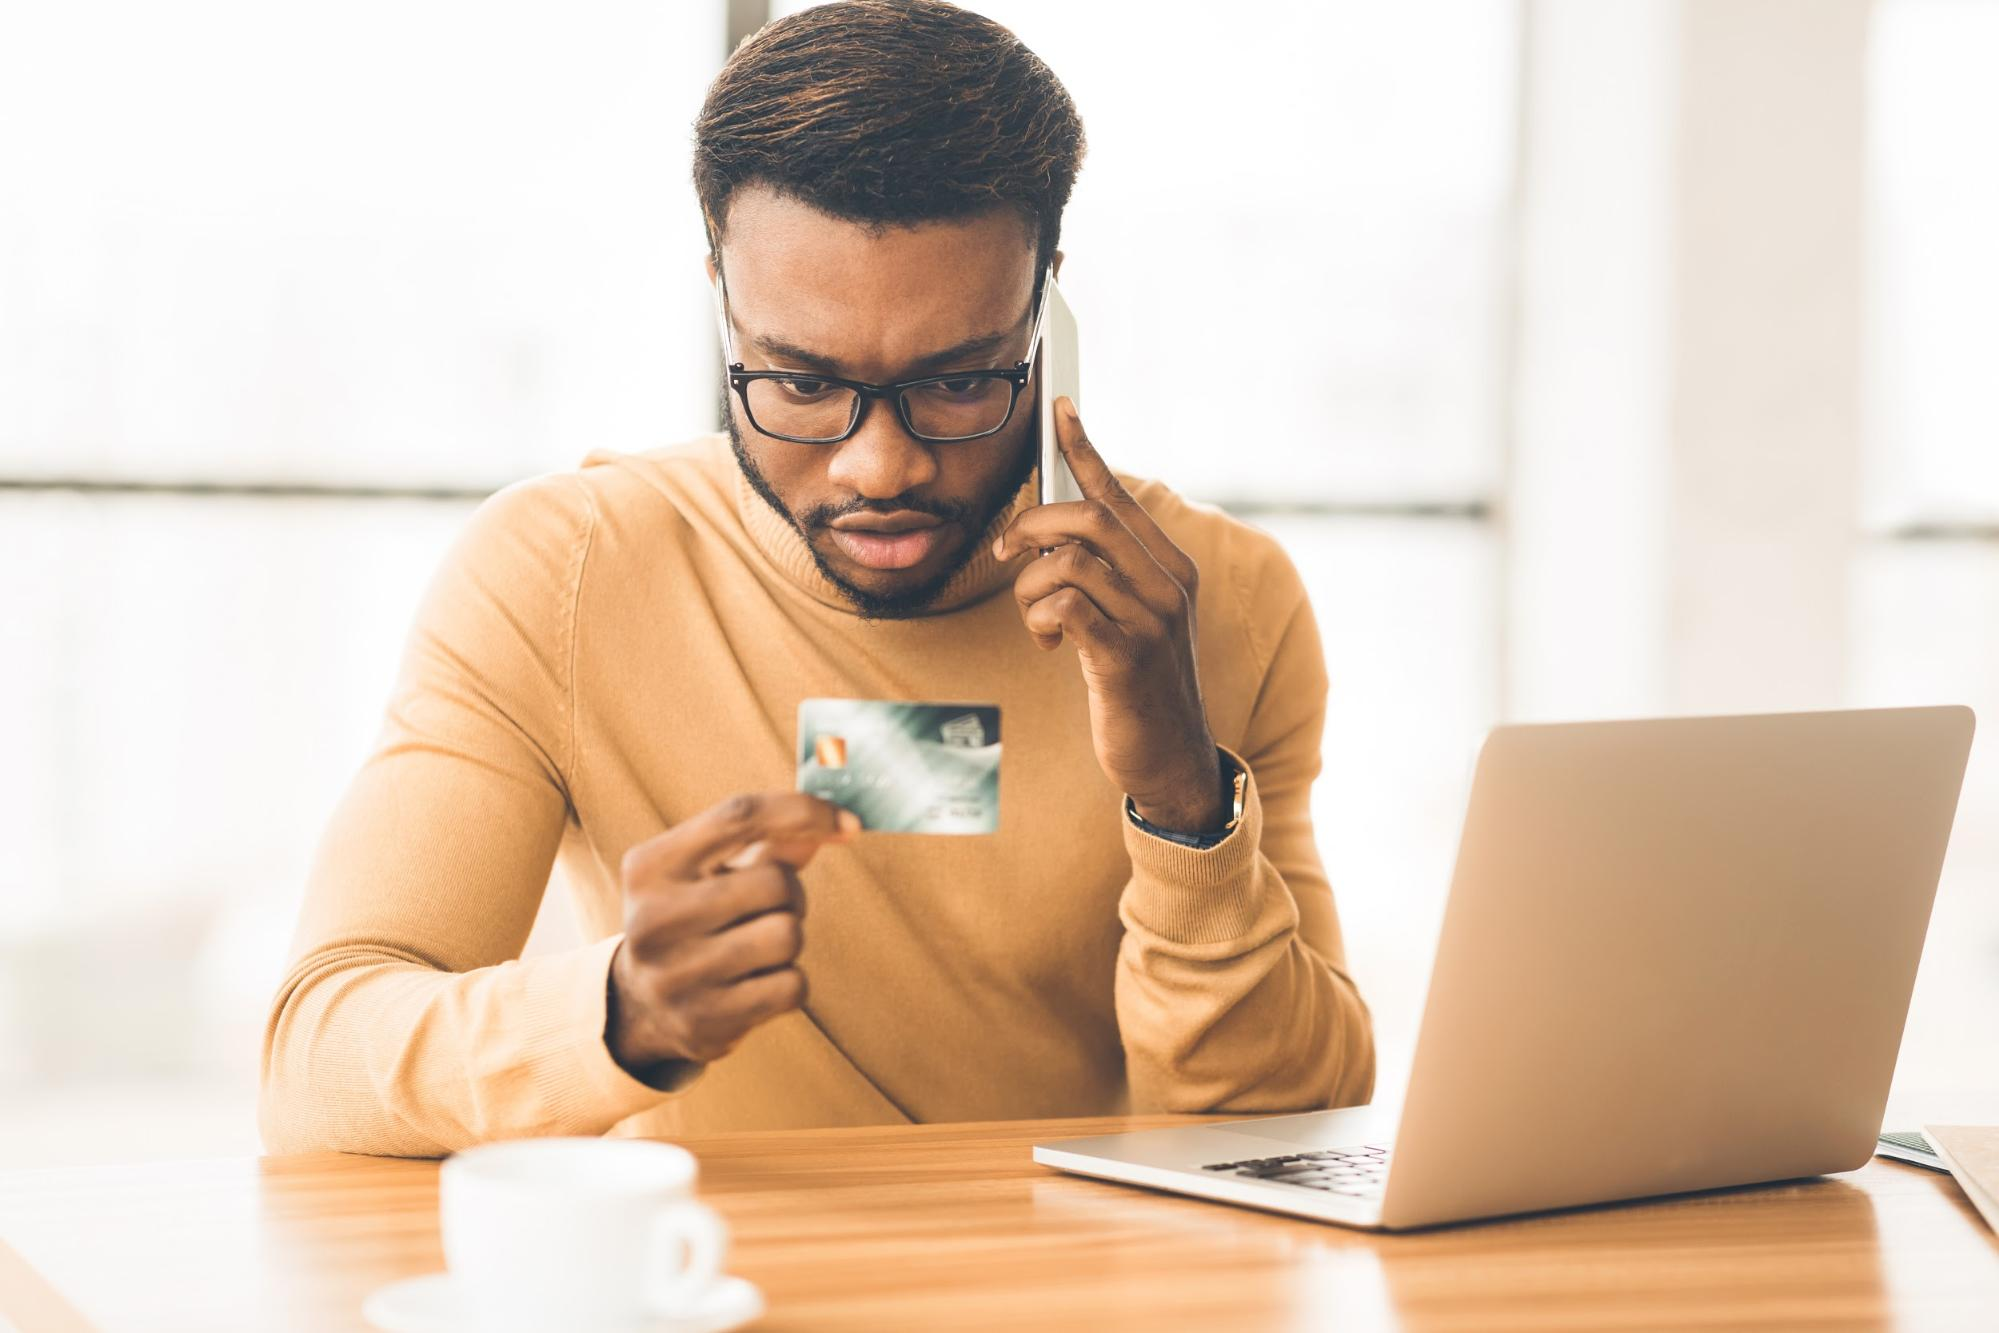 Credit card debt calculator: Man looks at credit card while talking on phone